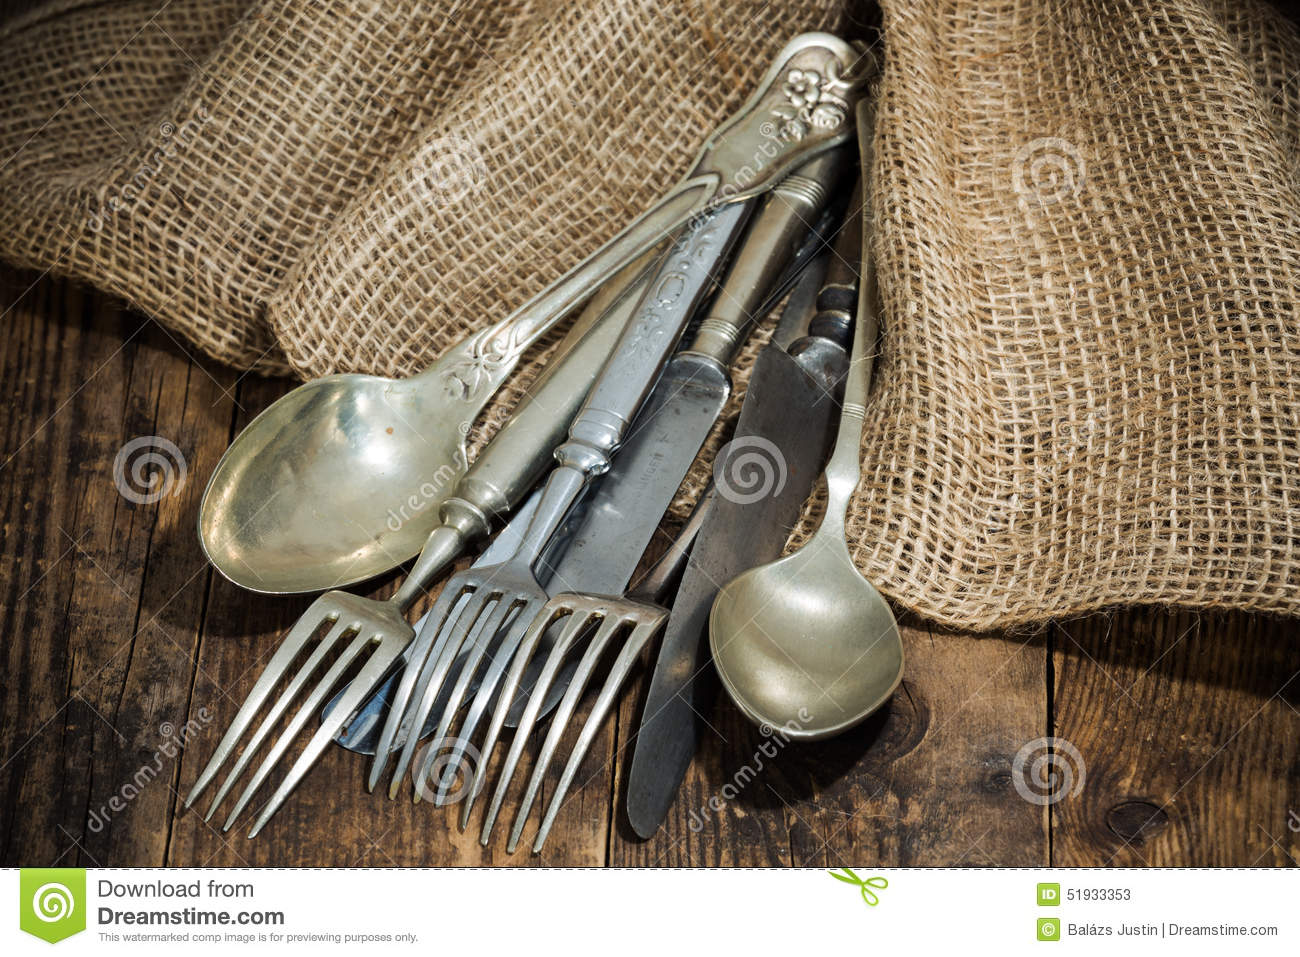 Rustic Silverware Flatware The Old Wooden Table With A Rustic Style Stock